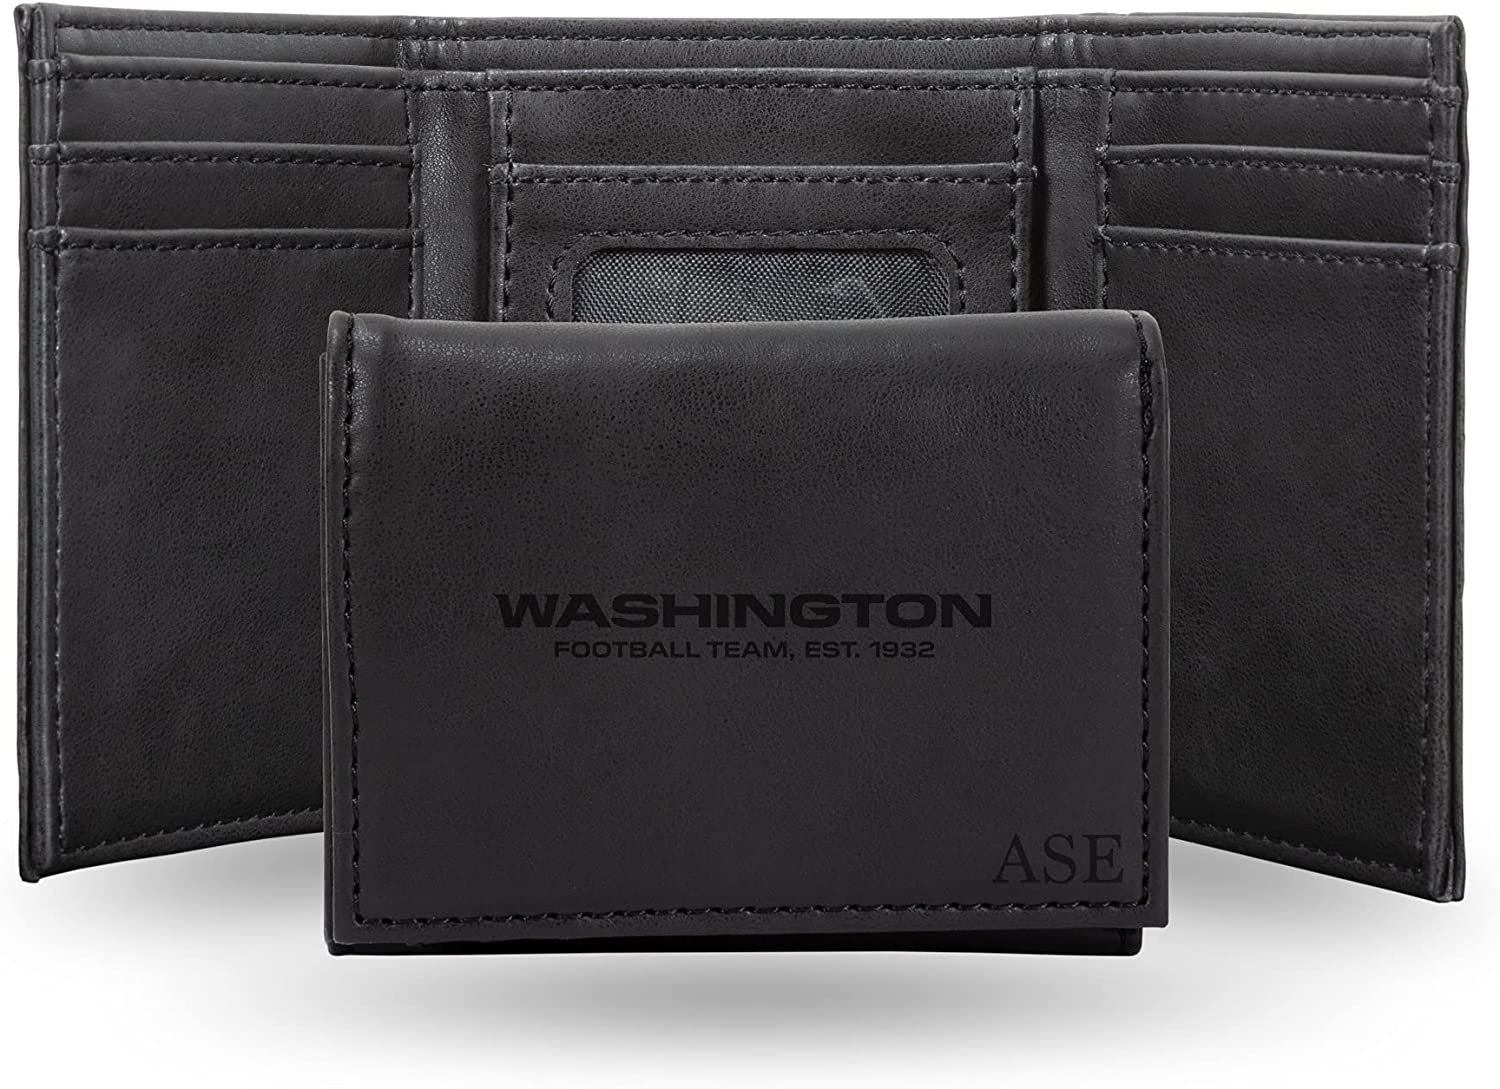 Rico Industries Laser Engraved NFL Washington Football Team Black Personalized Trifold Wallet : Sports & Outdoors